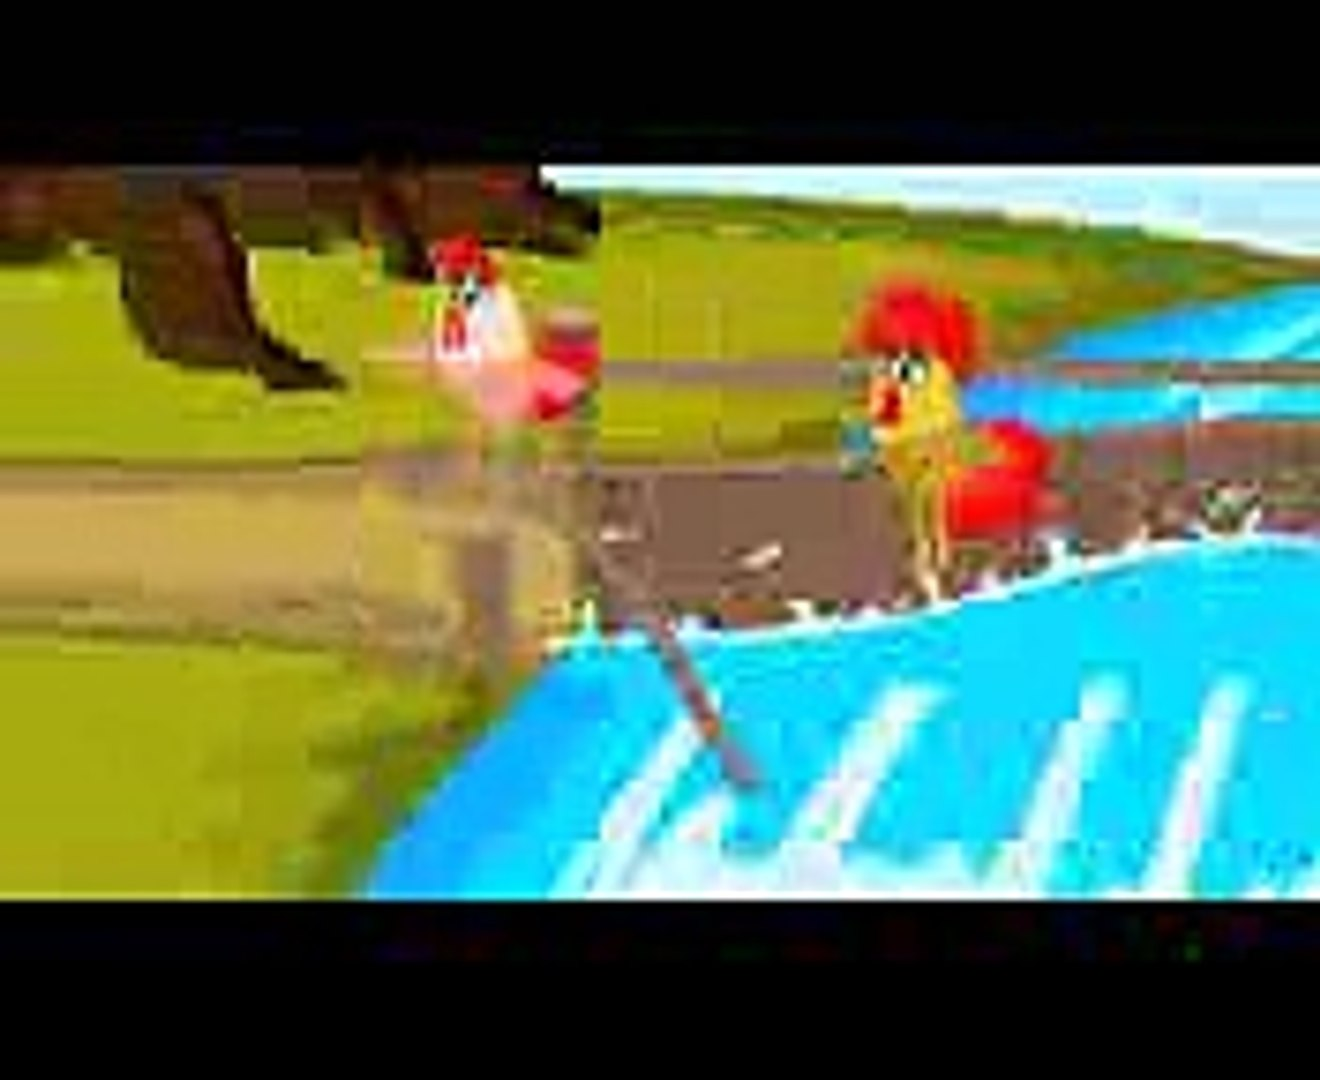 WATER OVER THE BRIDGE - Brum & Friends 115  Cartoons for Kids  Videos for Toddlers  Kids Show